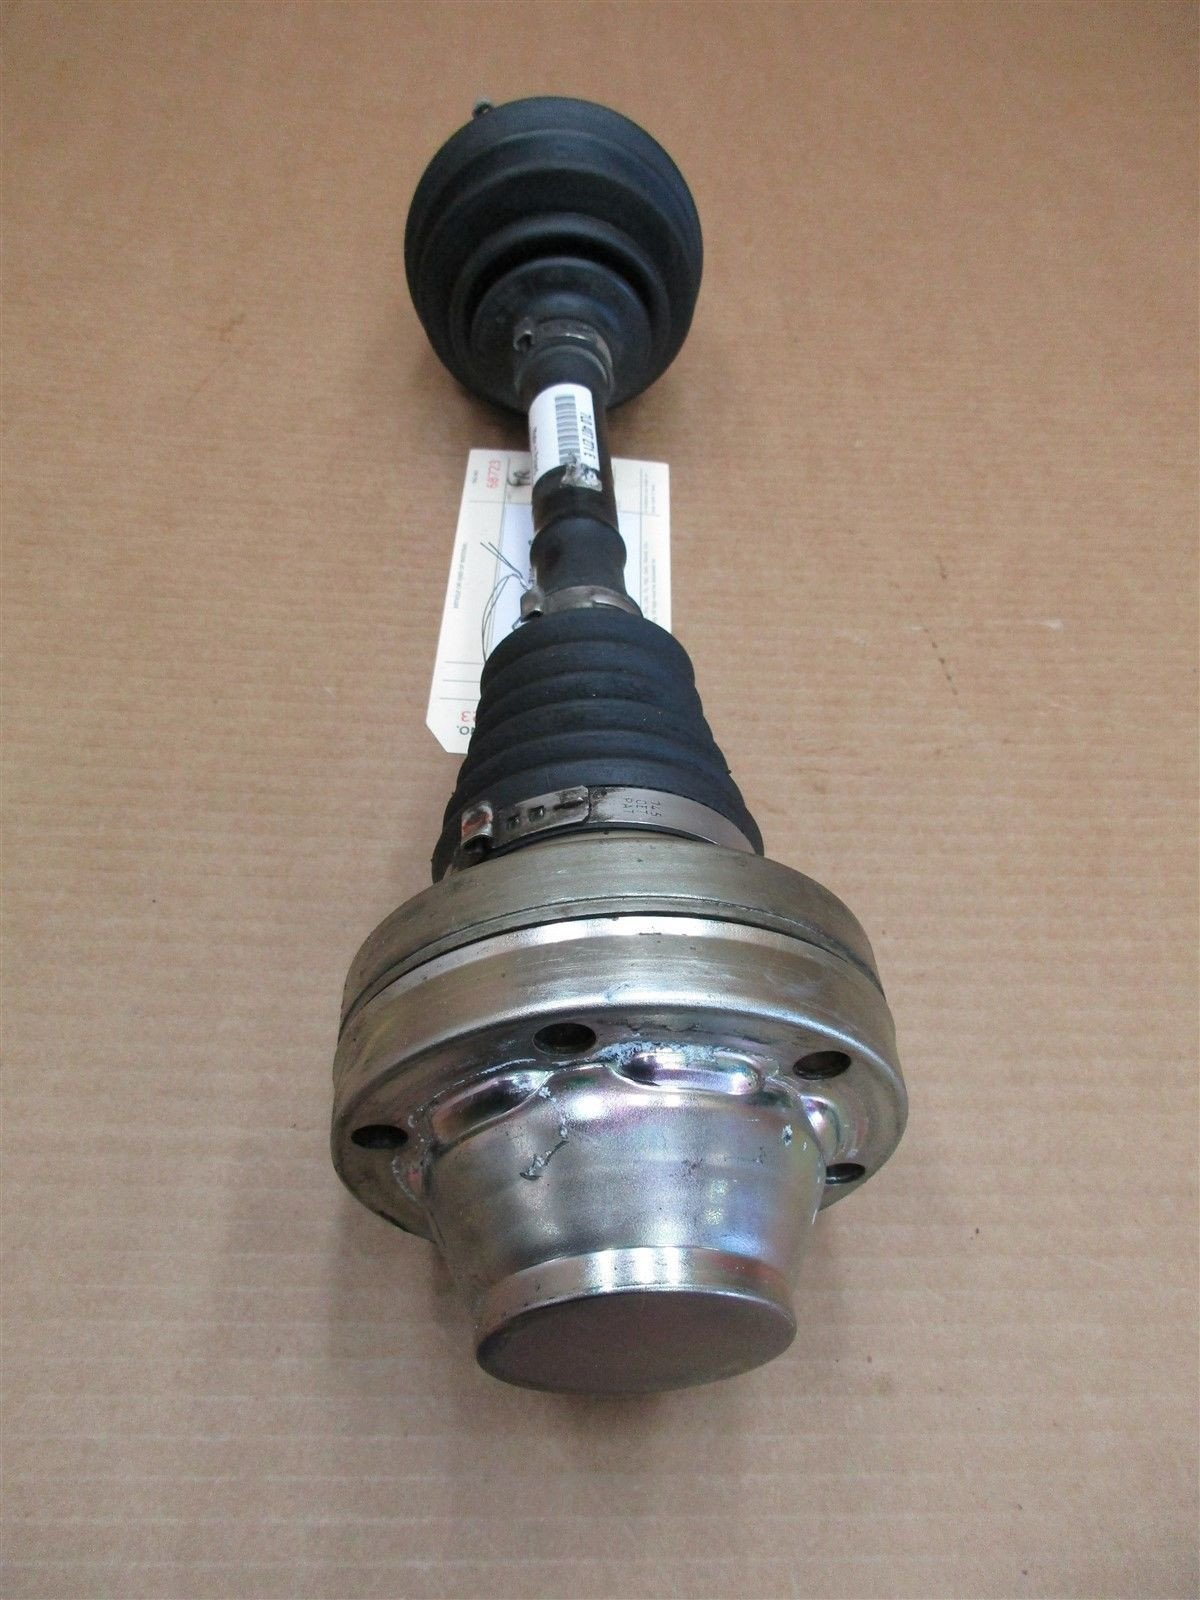 08 Cayenne S AWD Porsche 957 R FRONT DRIVE SHAFT AXLE 7L0407271E RIGHT 55,617